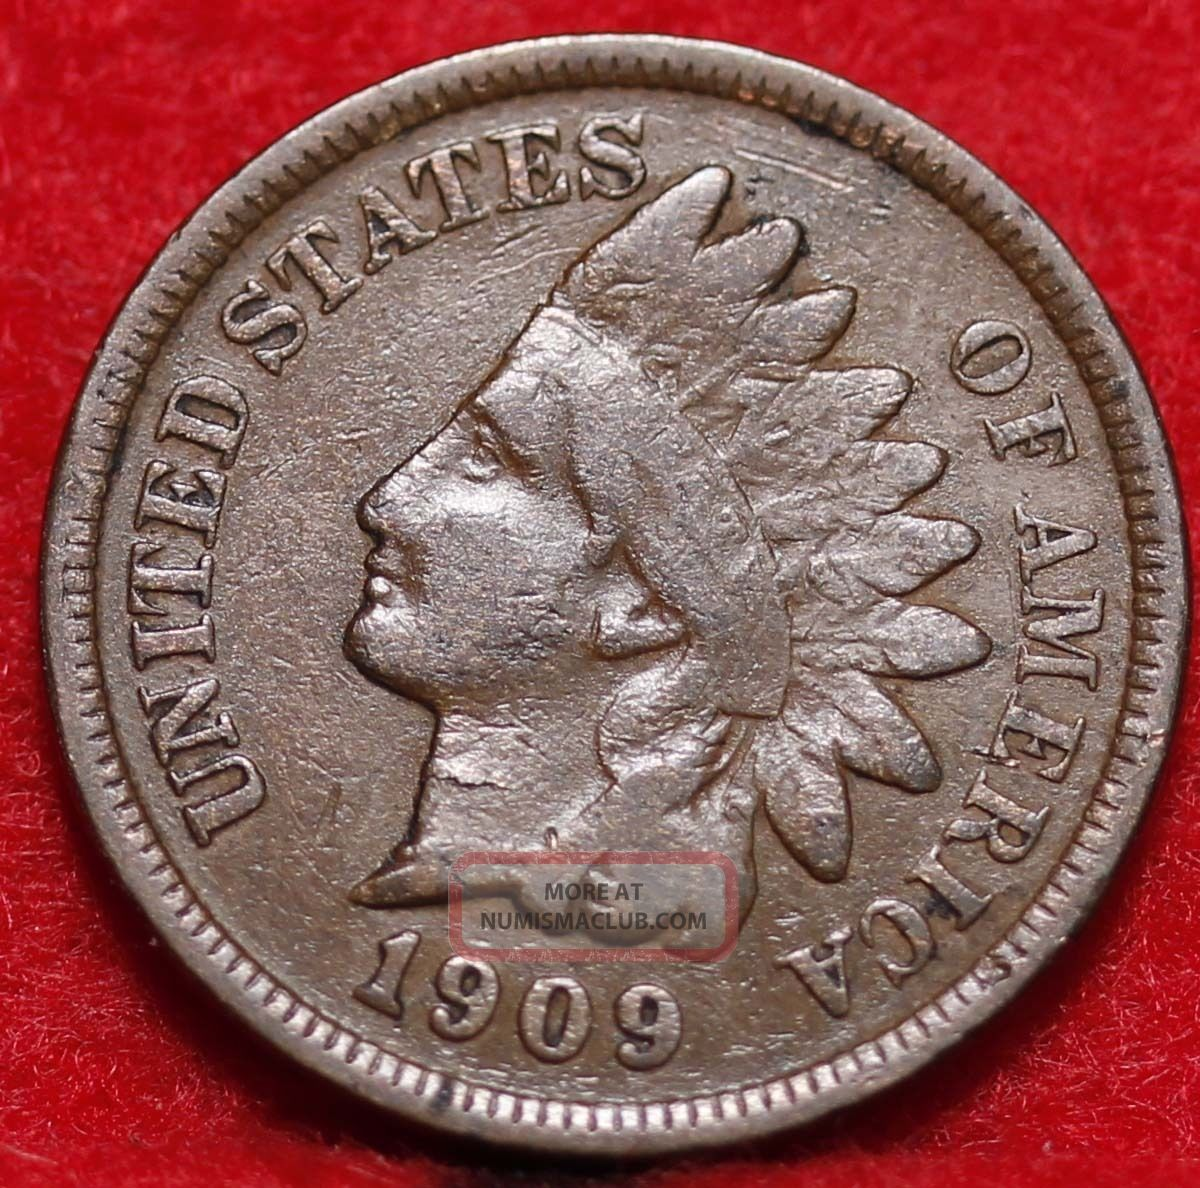 Circulated 1909 Philadelphia Copper Indian Head Cent Small Cents photo